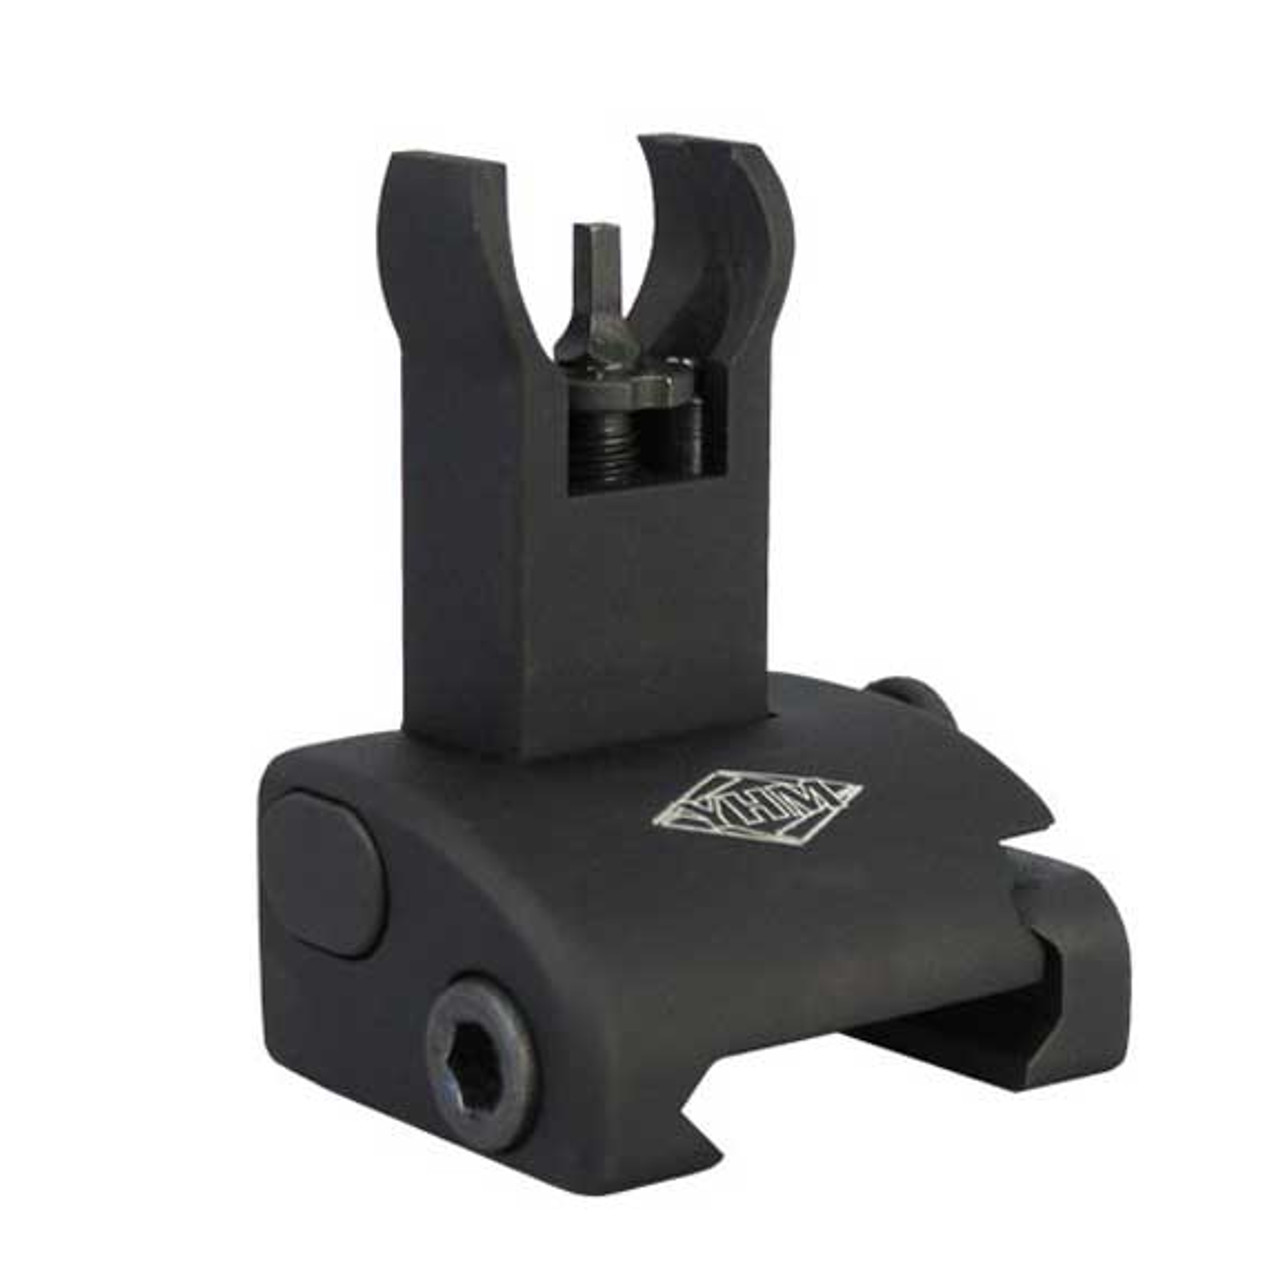 YHM Quick Deploy Sight - Front